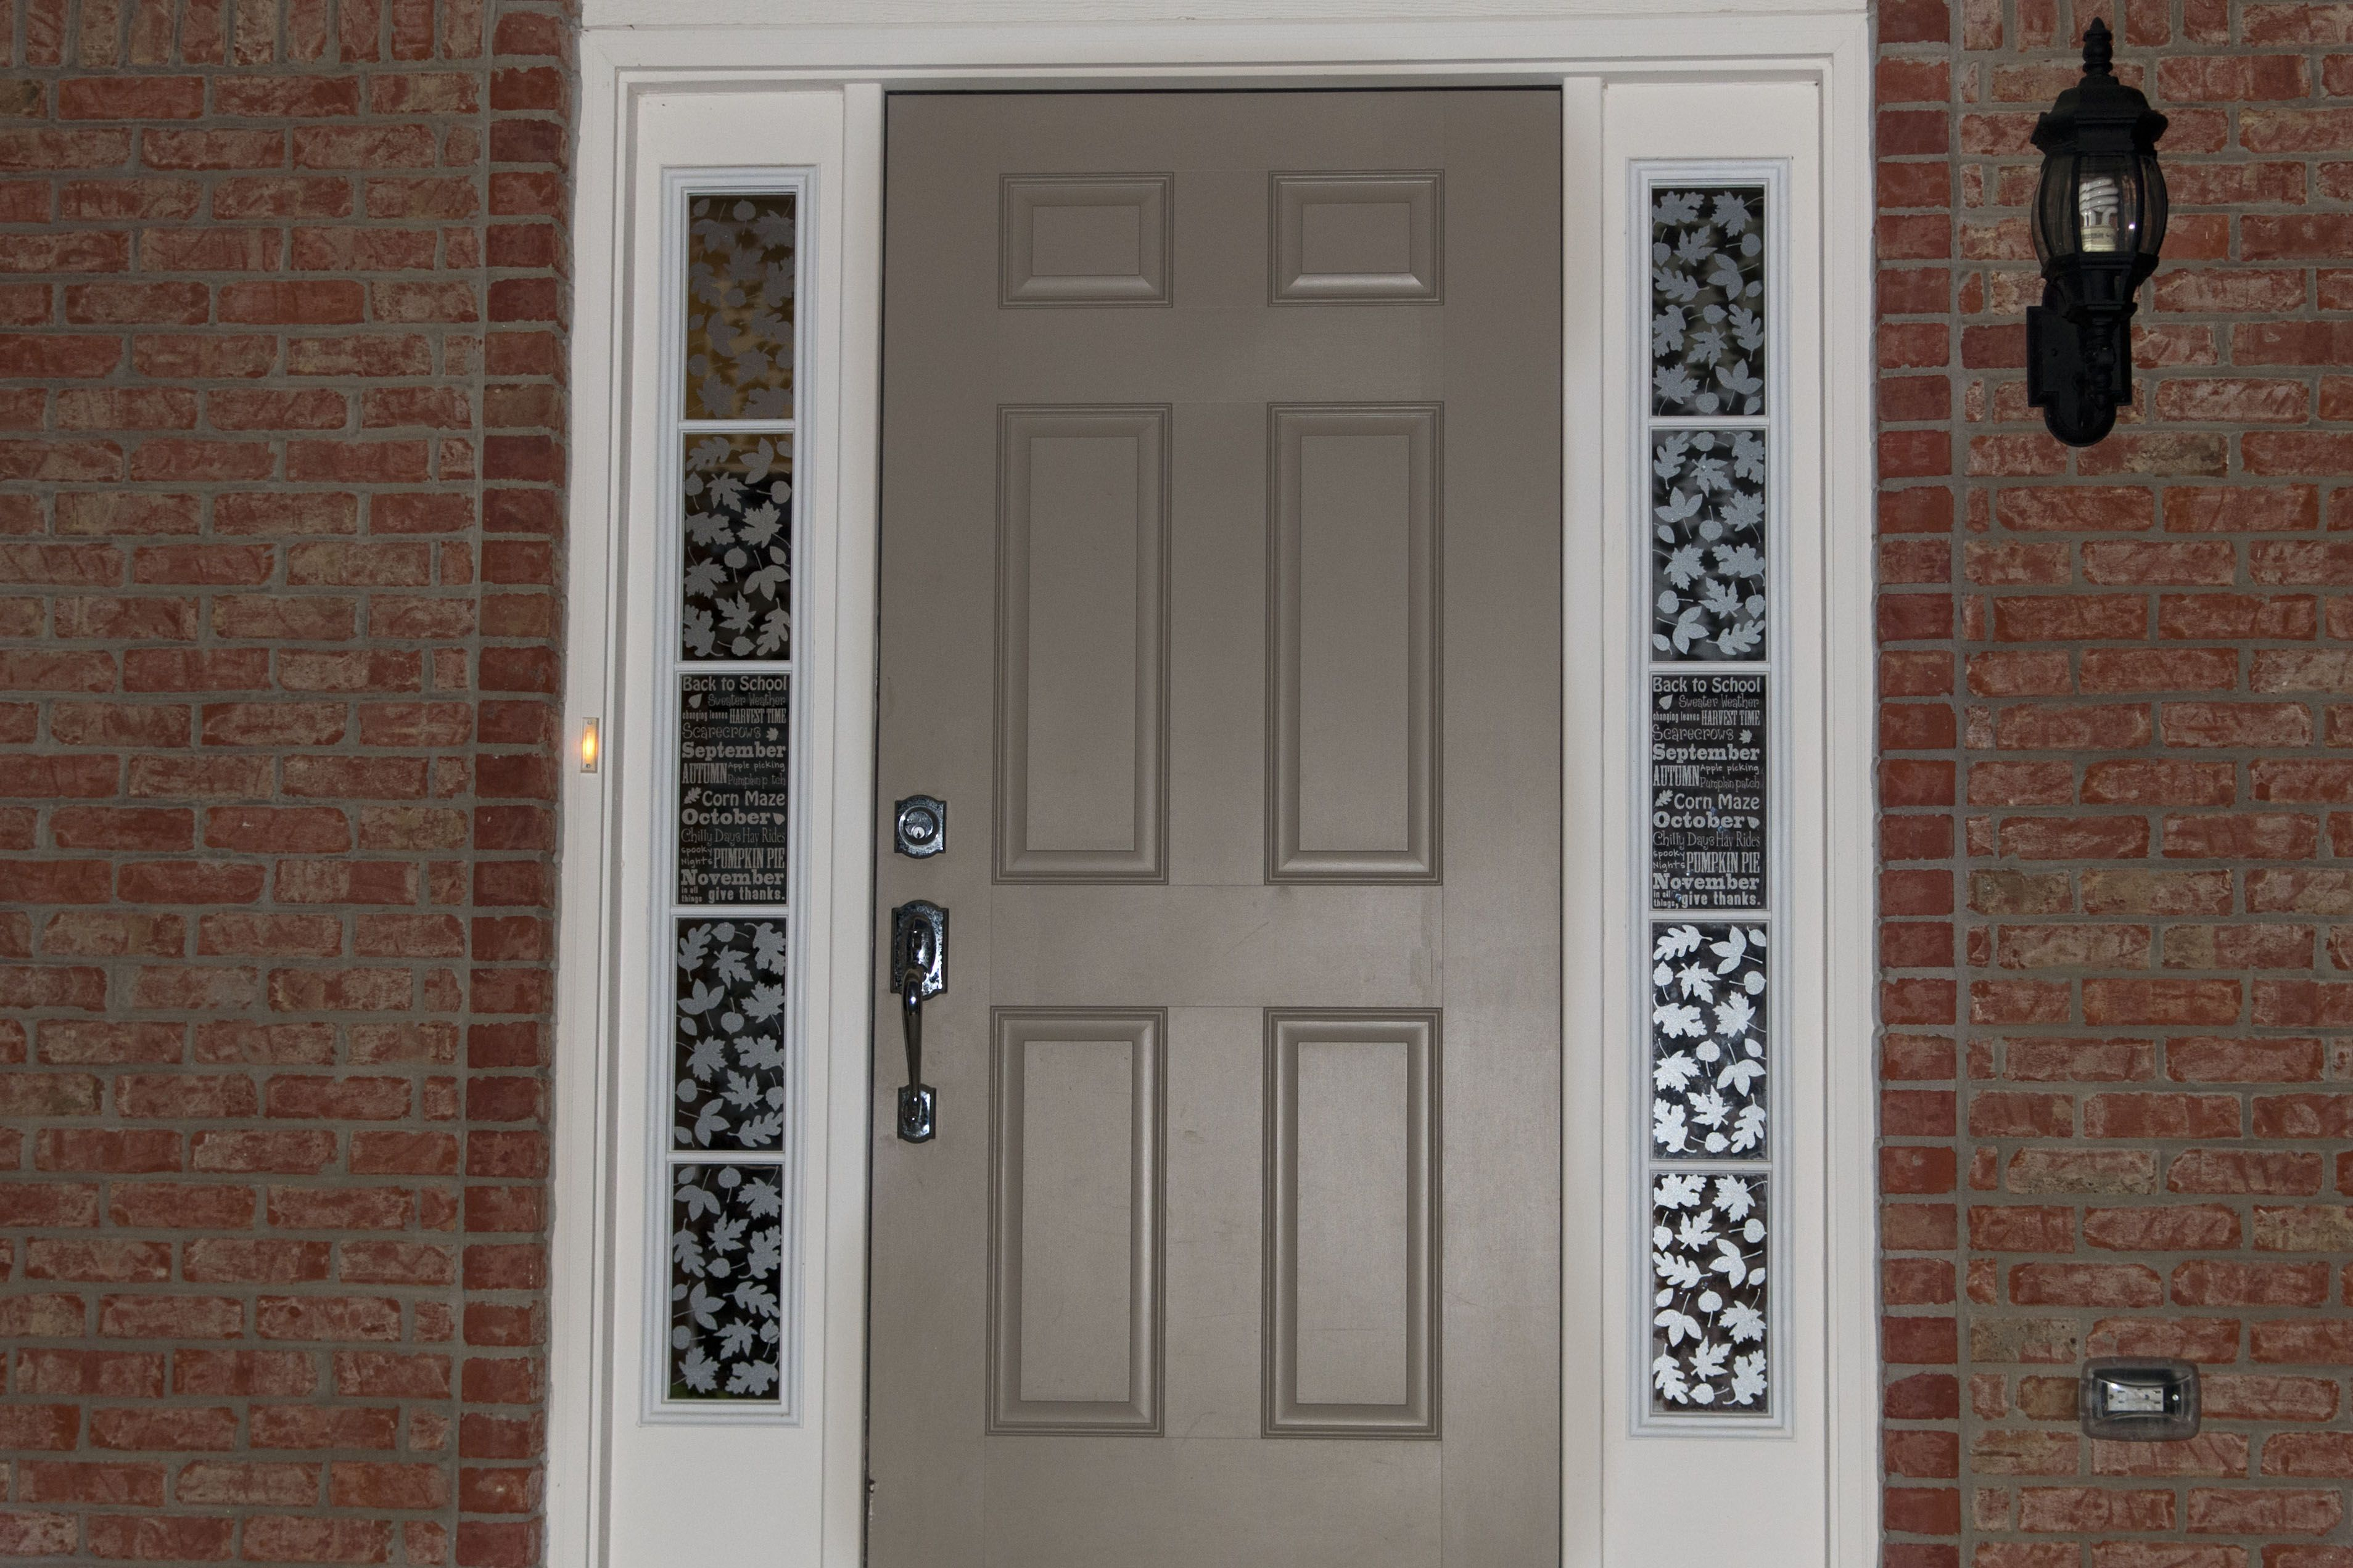 Depiction Of Sidelight Window Treatments On The Main Entry Doors